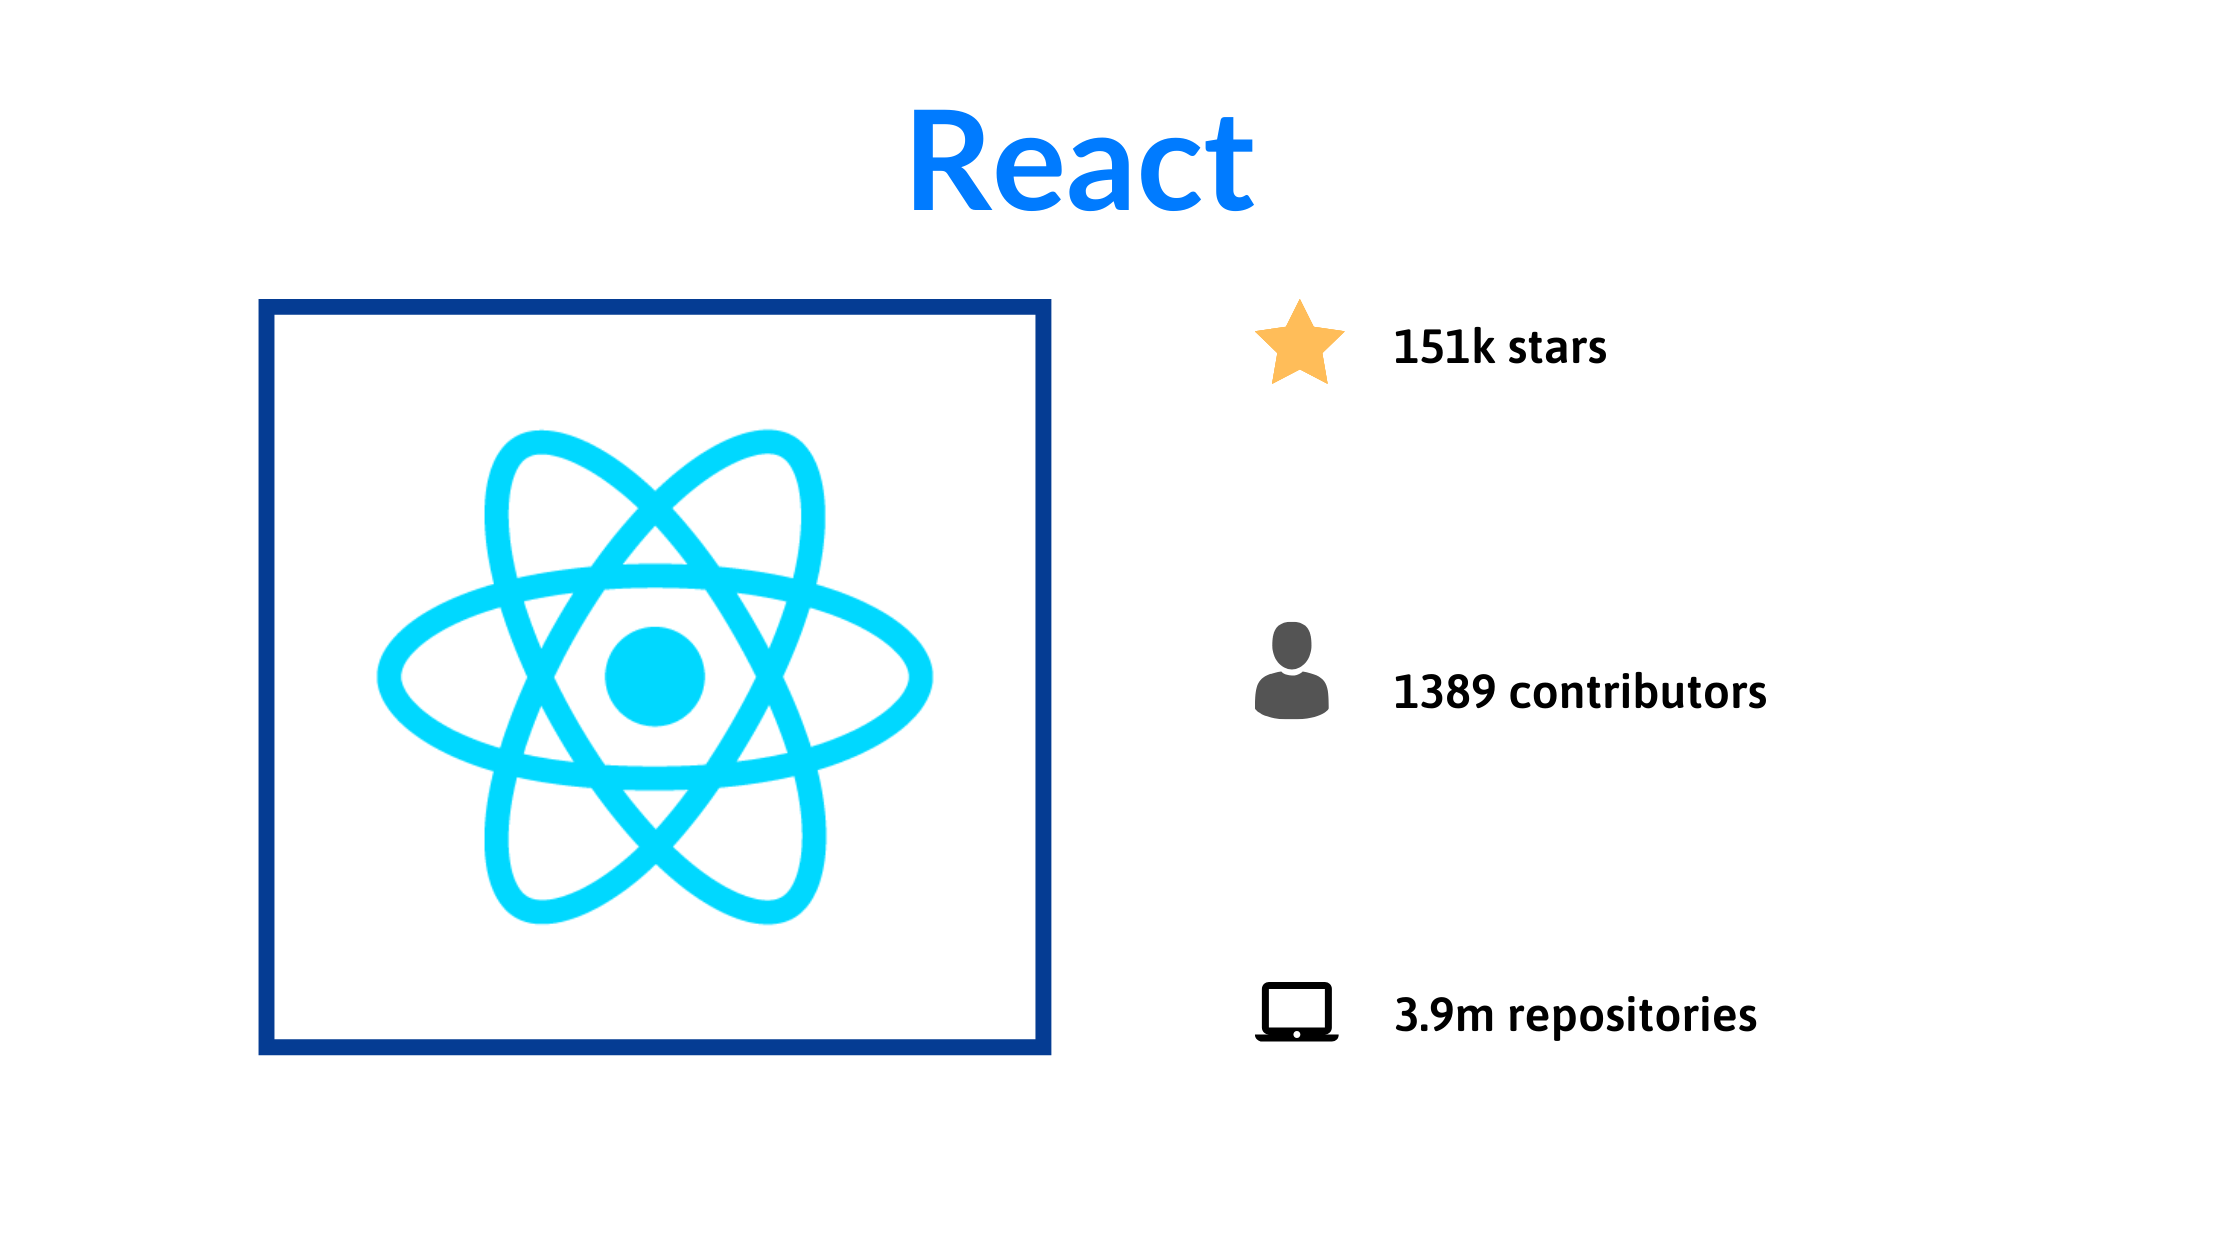 react-a-javascript-library-fobuilding-user-interfaces